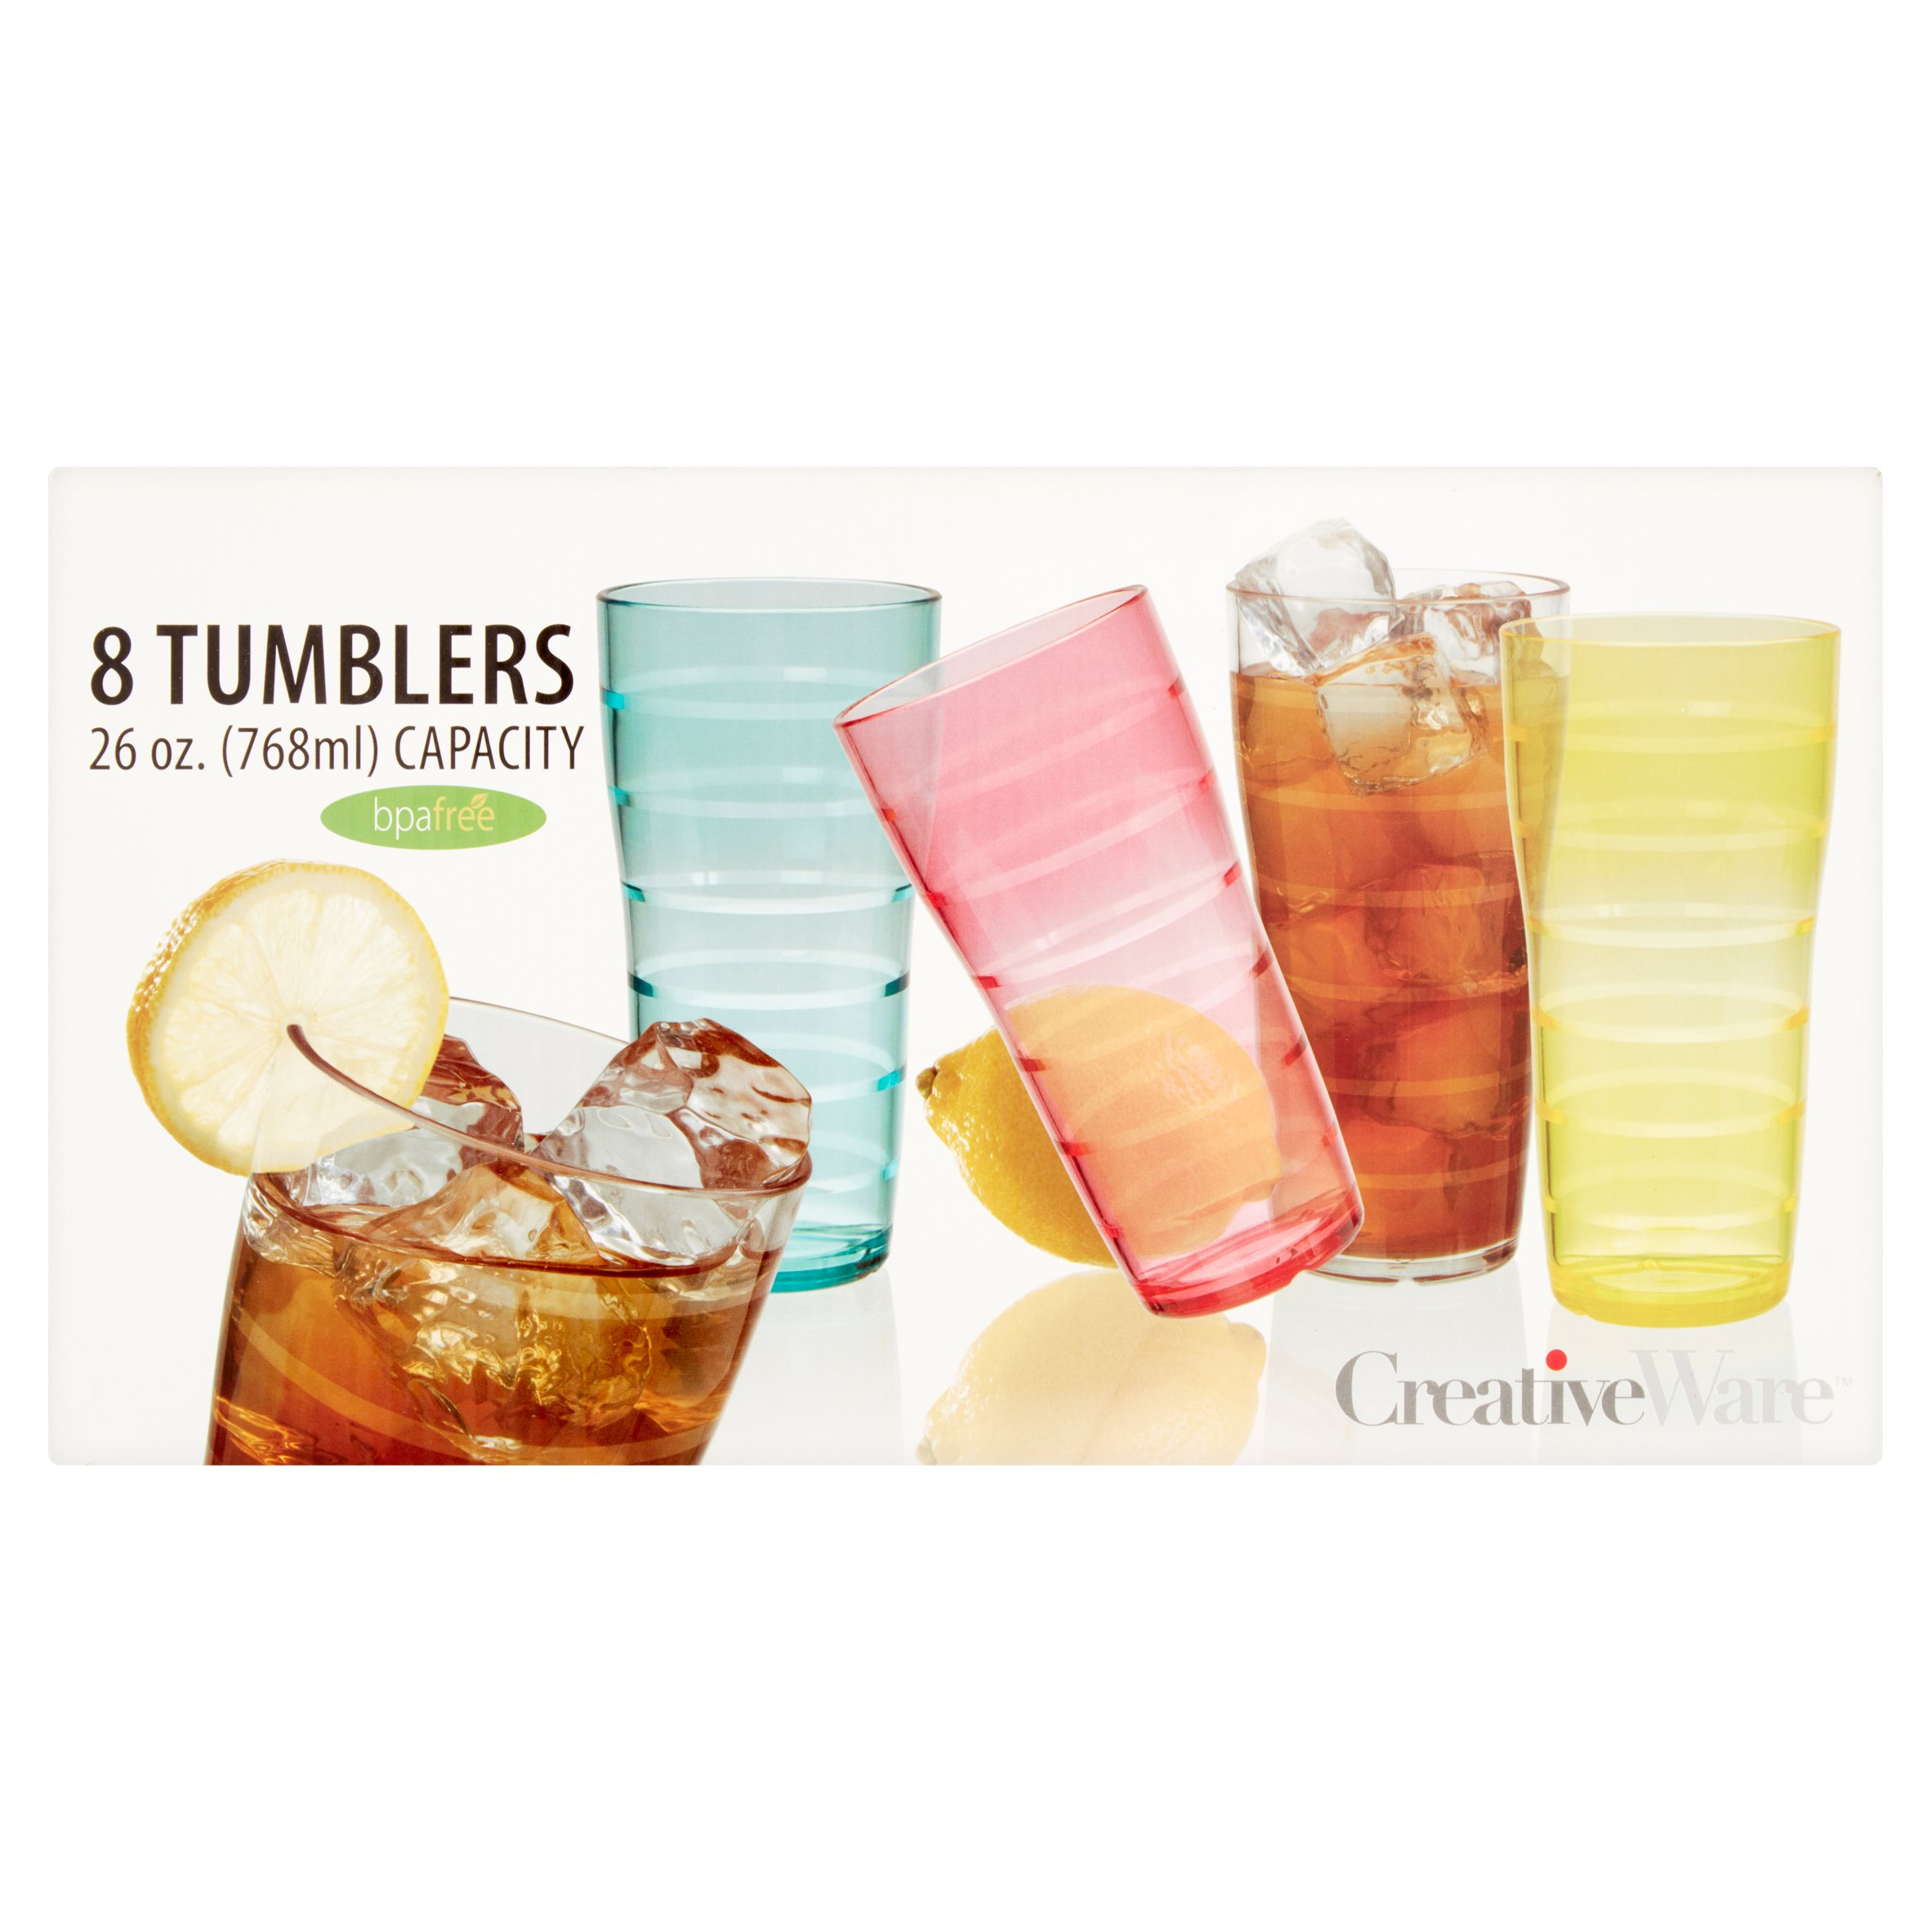 Creative Ware 26 oz. Capacity Tumblers, 8 count